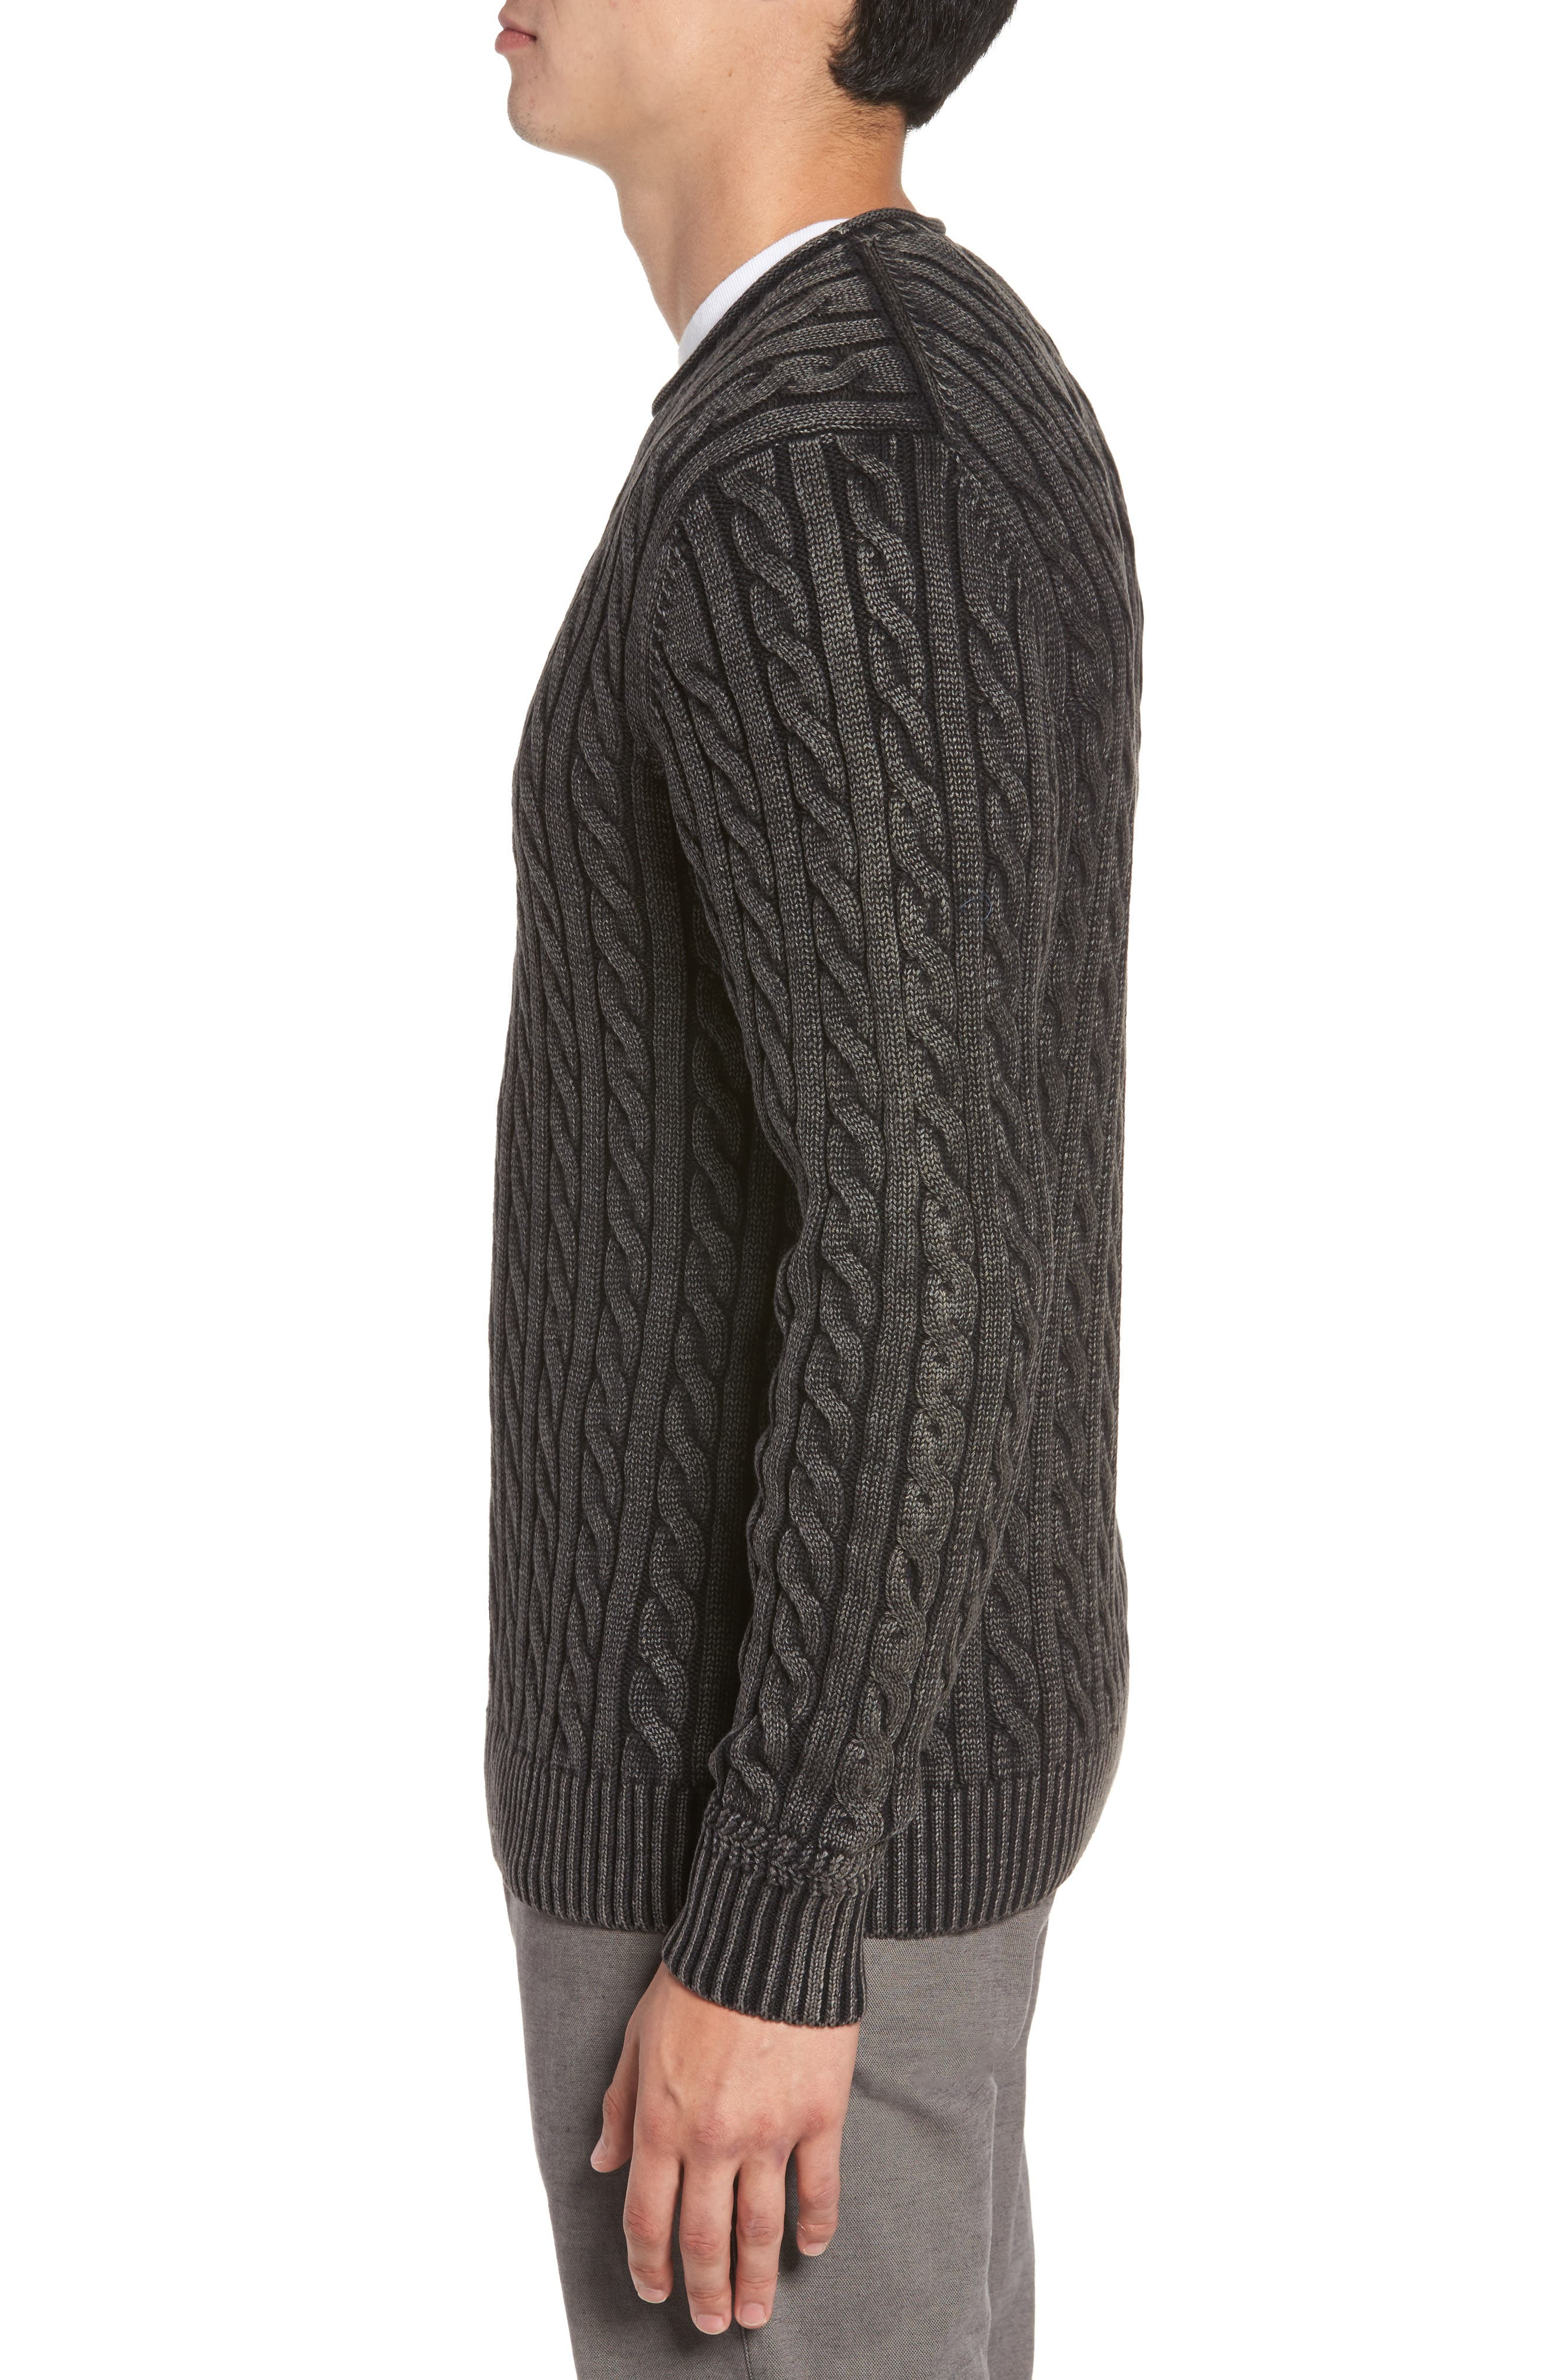 Landray Cable Knit Cotton Sweater,                             Alternate thumbnail 3, color,                             Charcoal